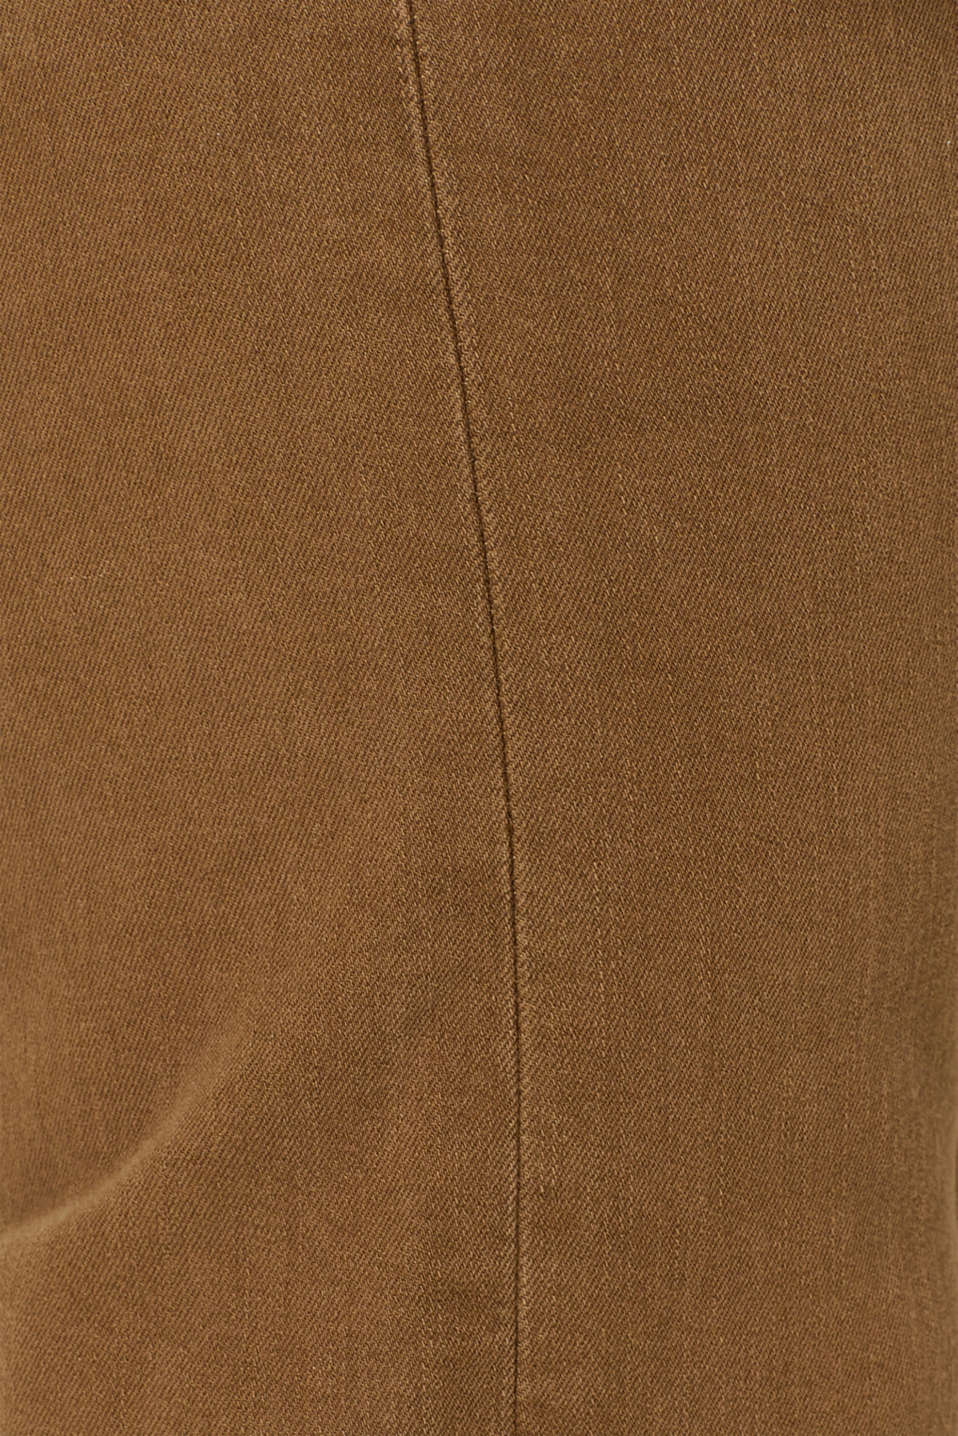 Super stretch jeans in an extra slim fit, BARK, detail image number 4